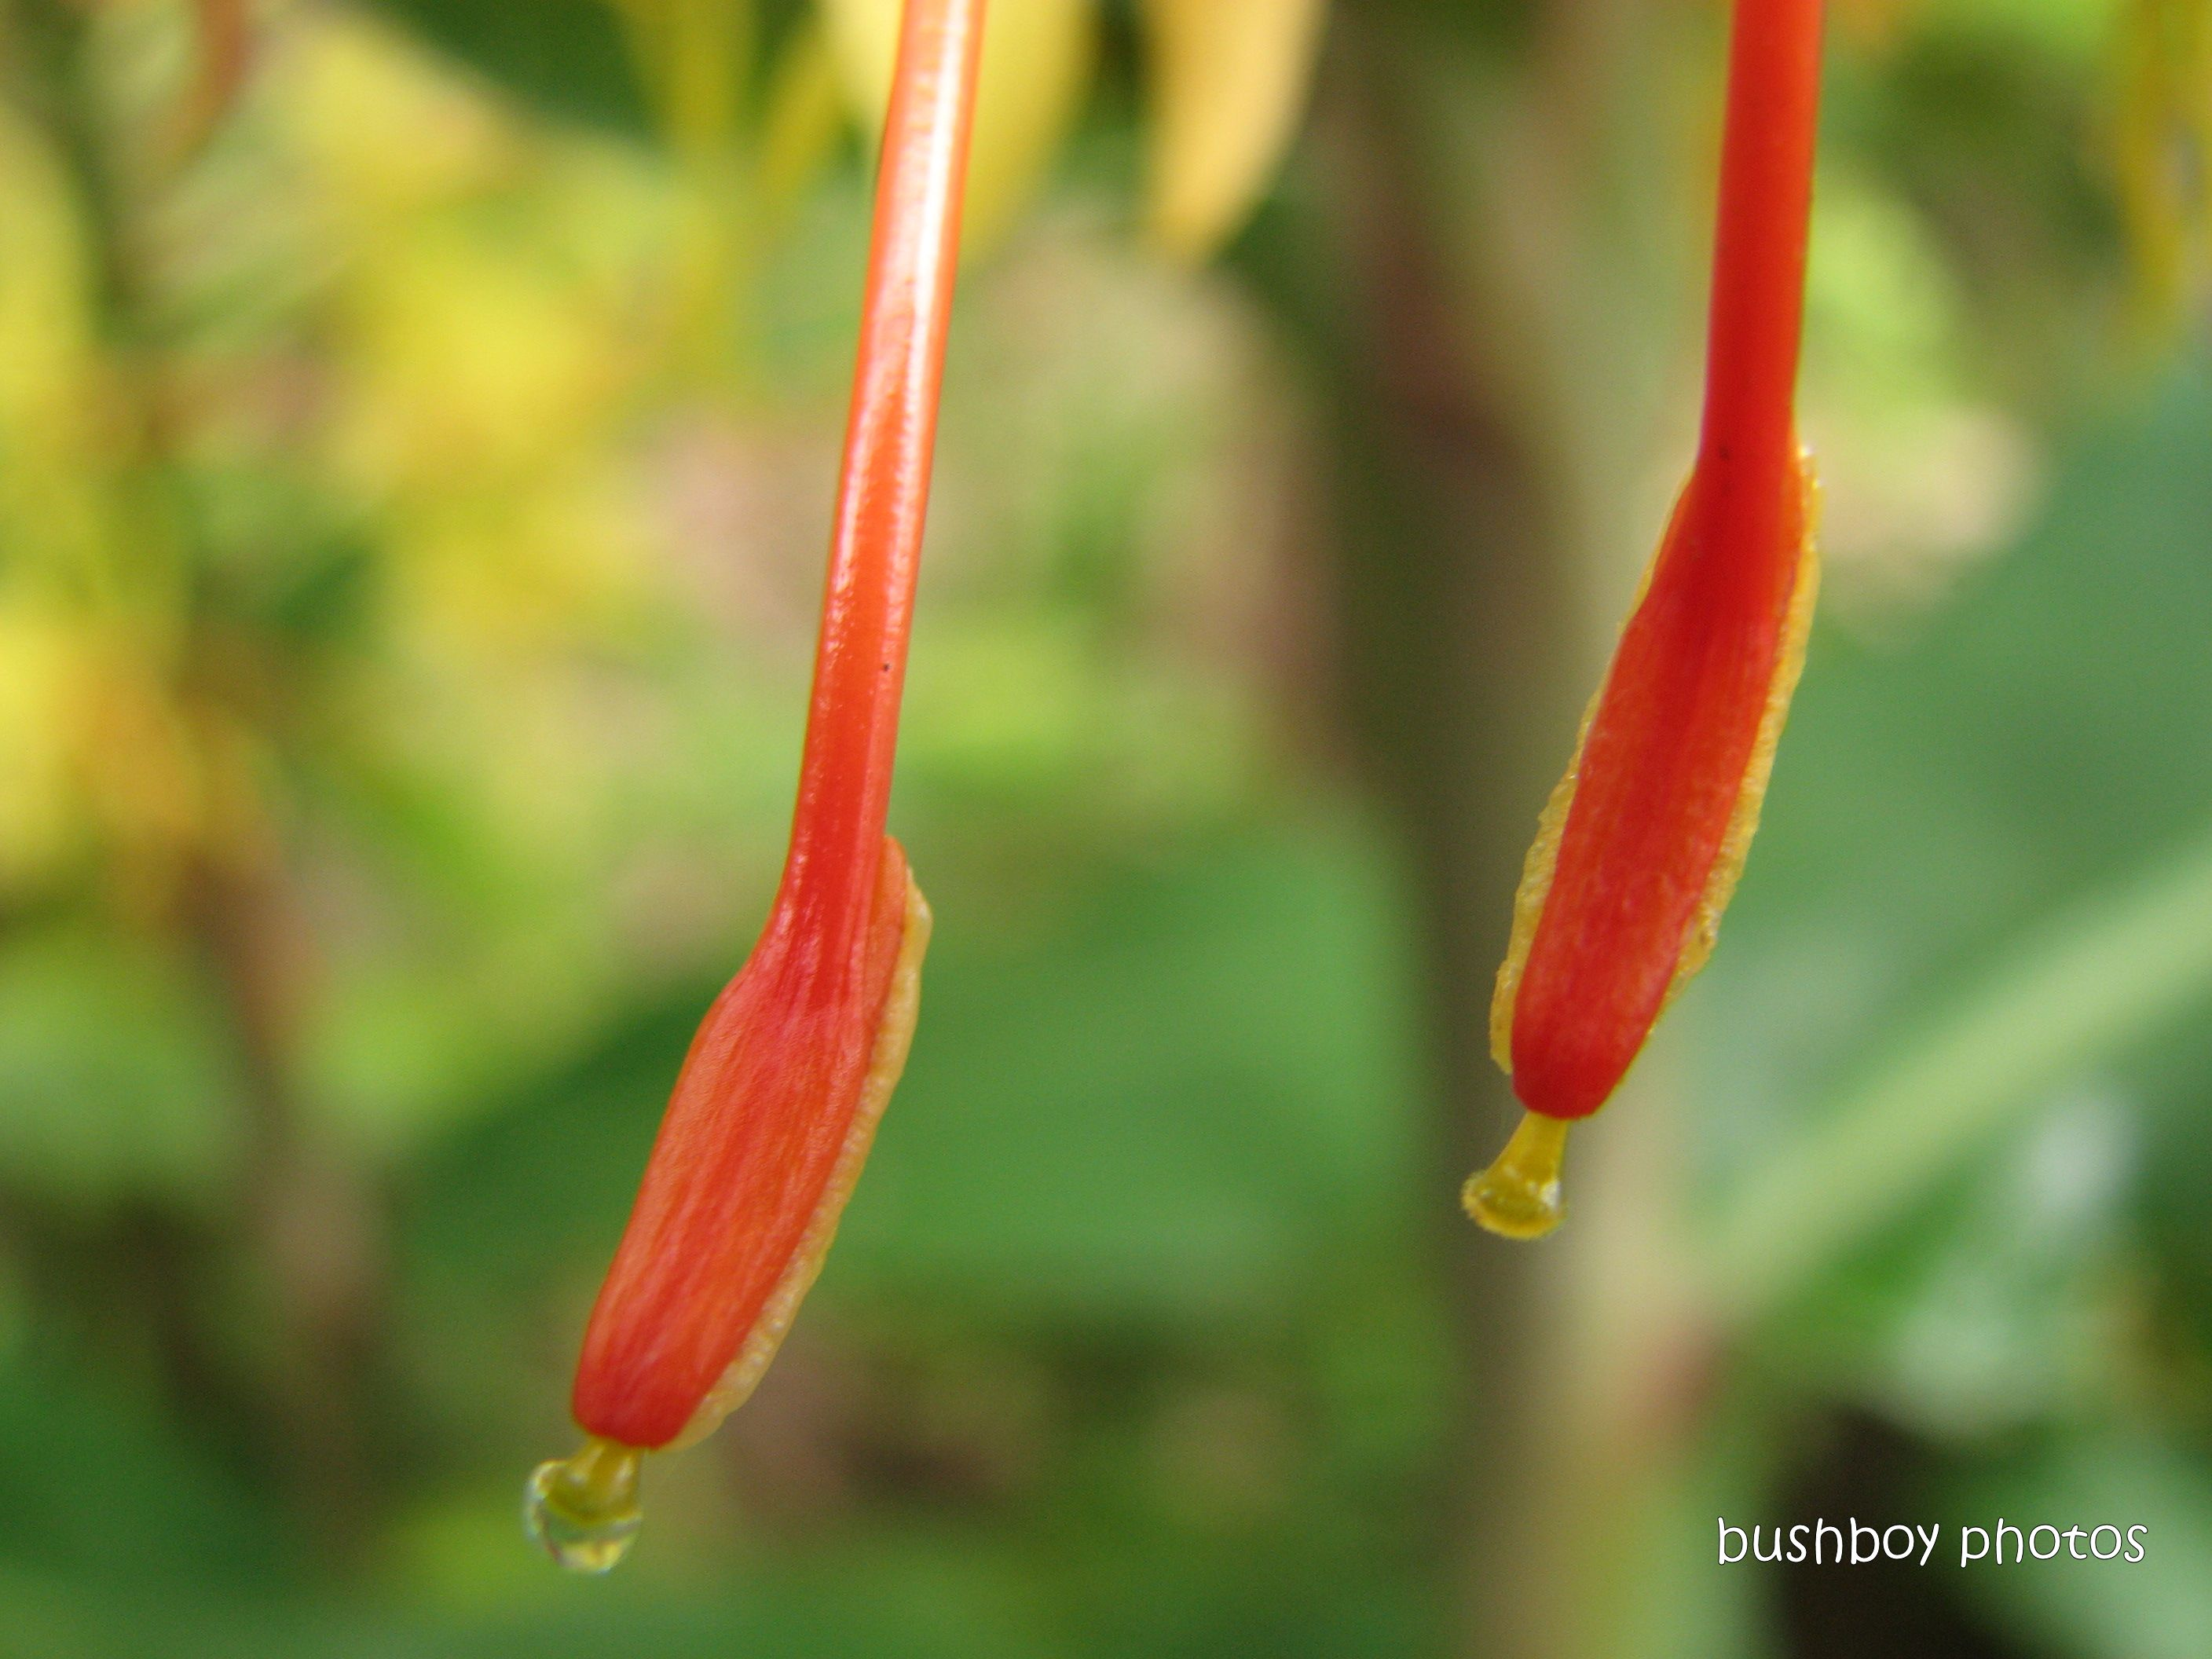 ginger flower10_orange stamen_drop_home_name _feb 2012